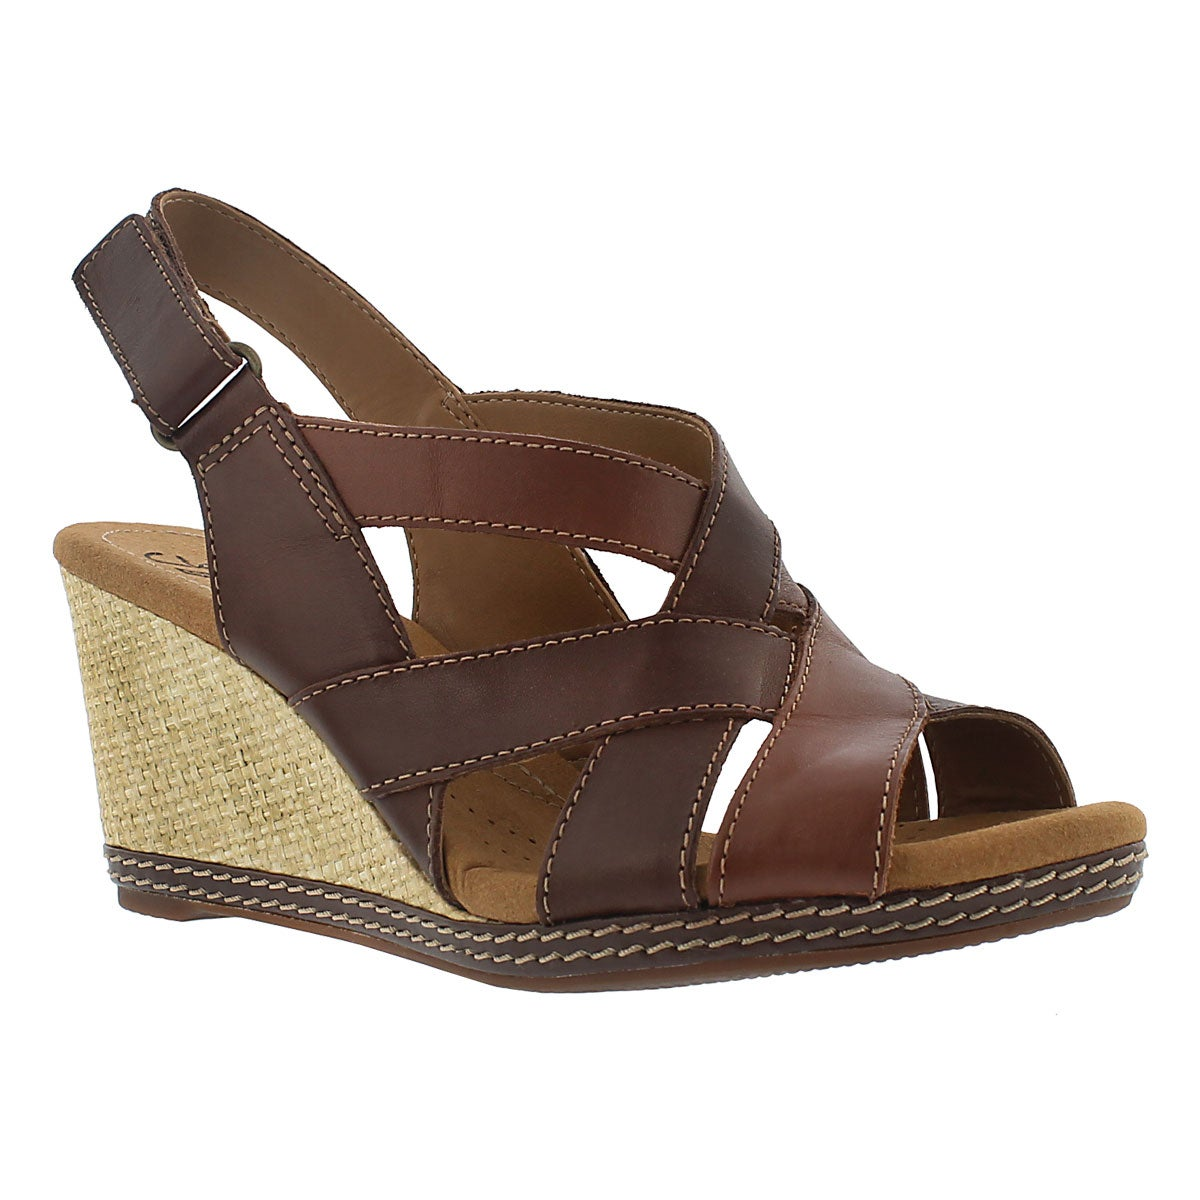 Lds Helio Coral brown multi wedge sandal